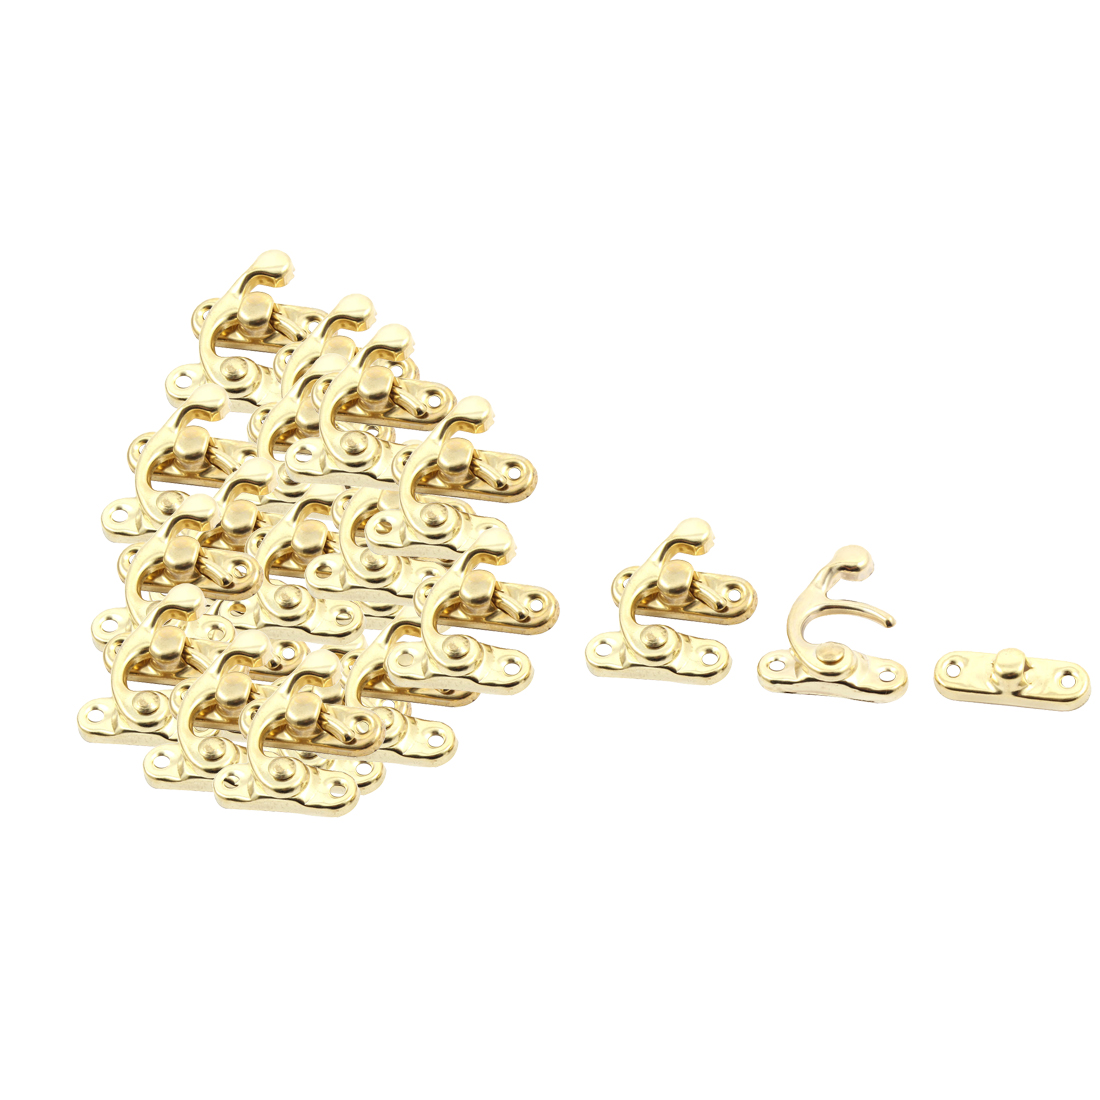 Decorative Jewelry Wine Wooden Box Hasp Latch Hook Gold Tone 20 Sets